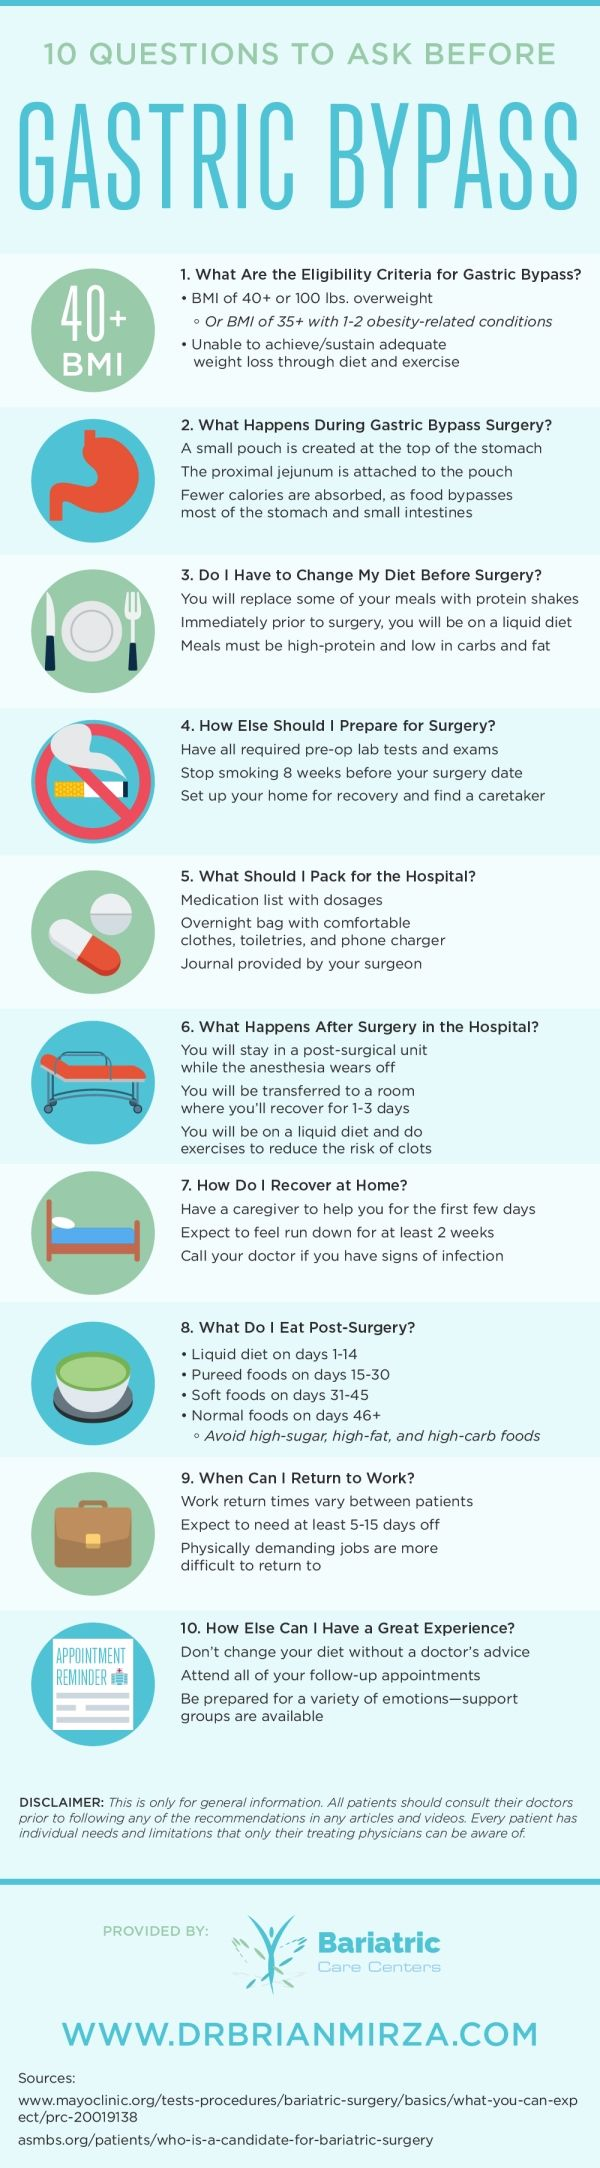 best images about health infographics heart the meals you eat before gastric bypass surgery should be high in protein and low in